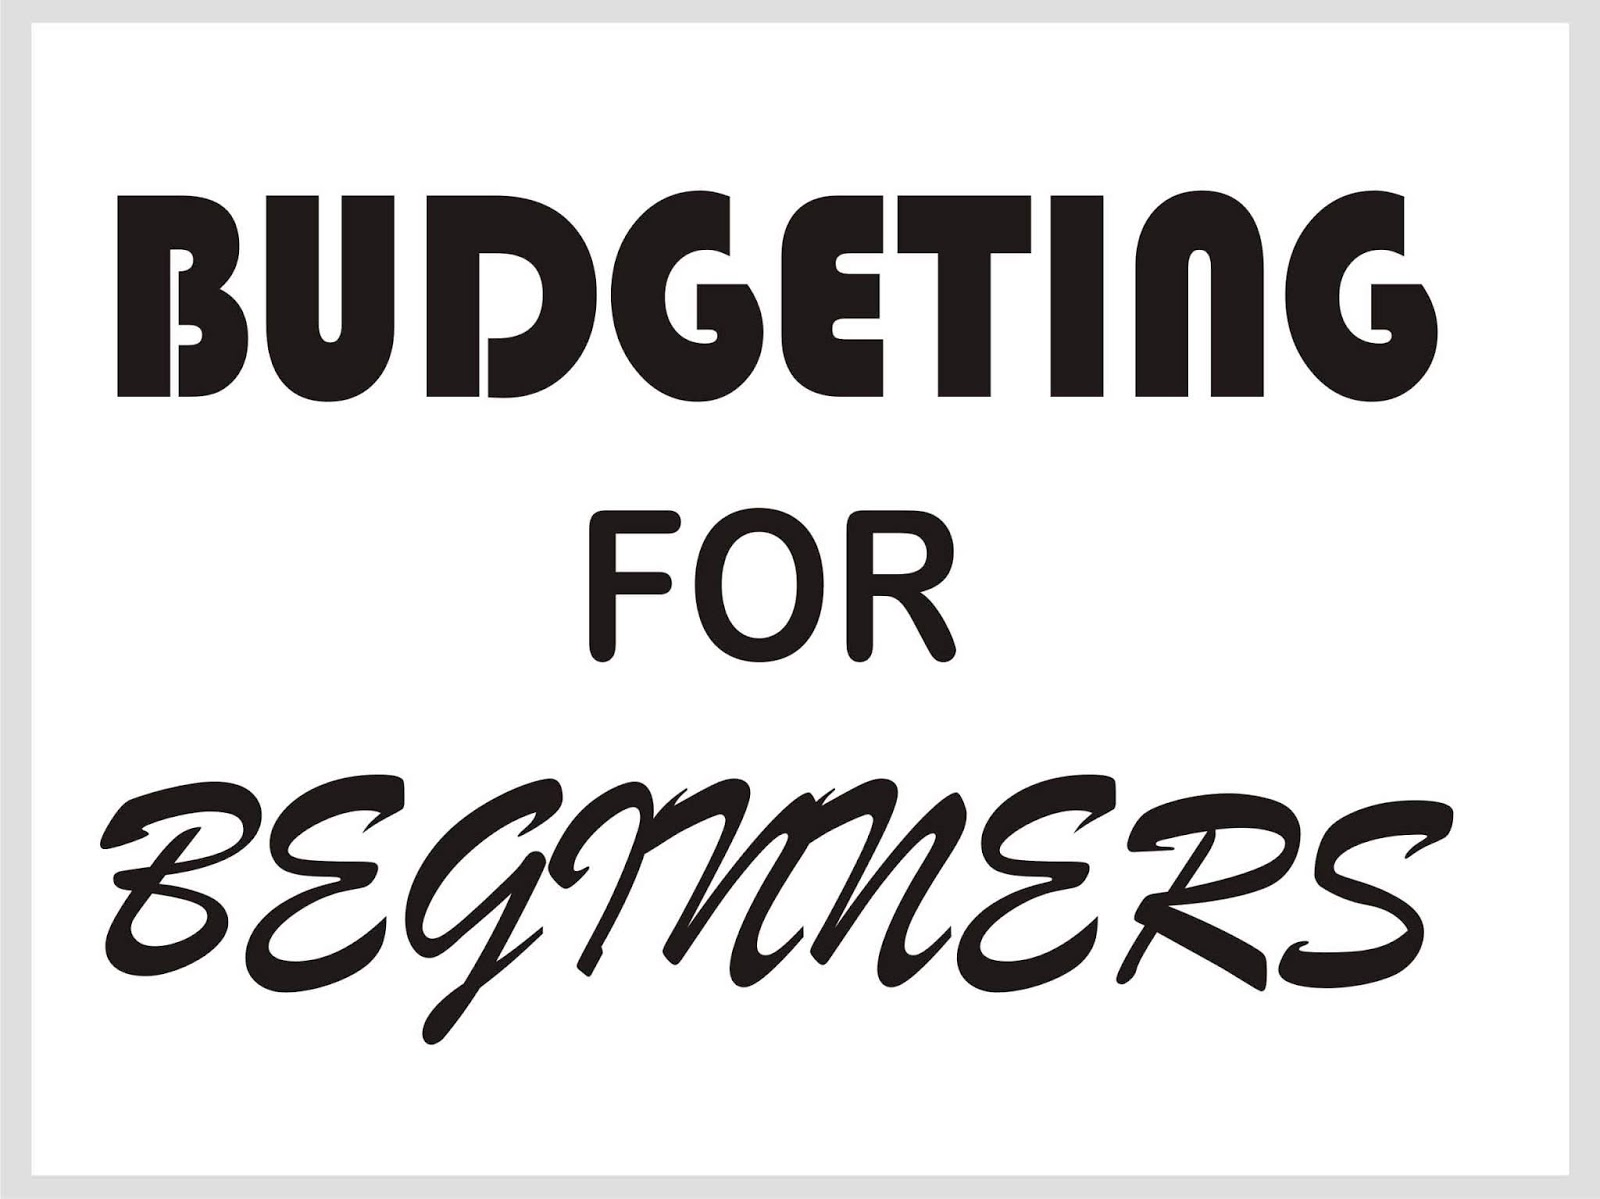 Budgeting for Beginners: Cash Envelope System | Weekly Paycheck